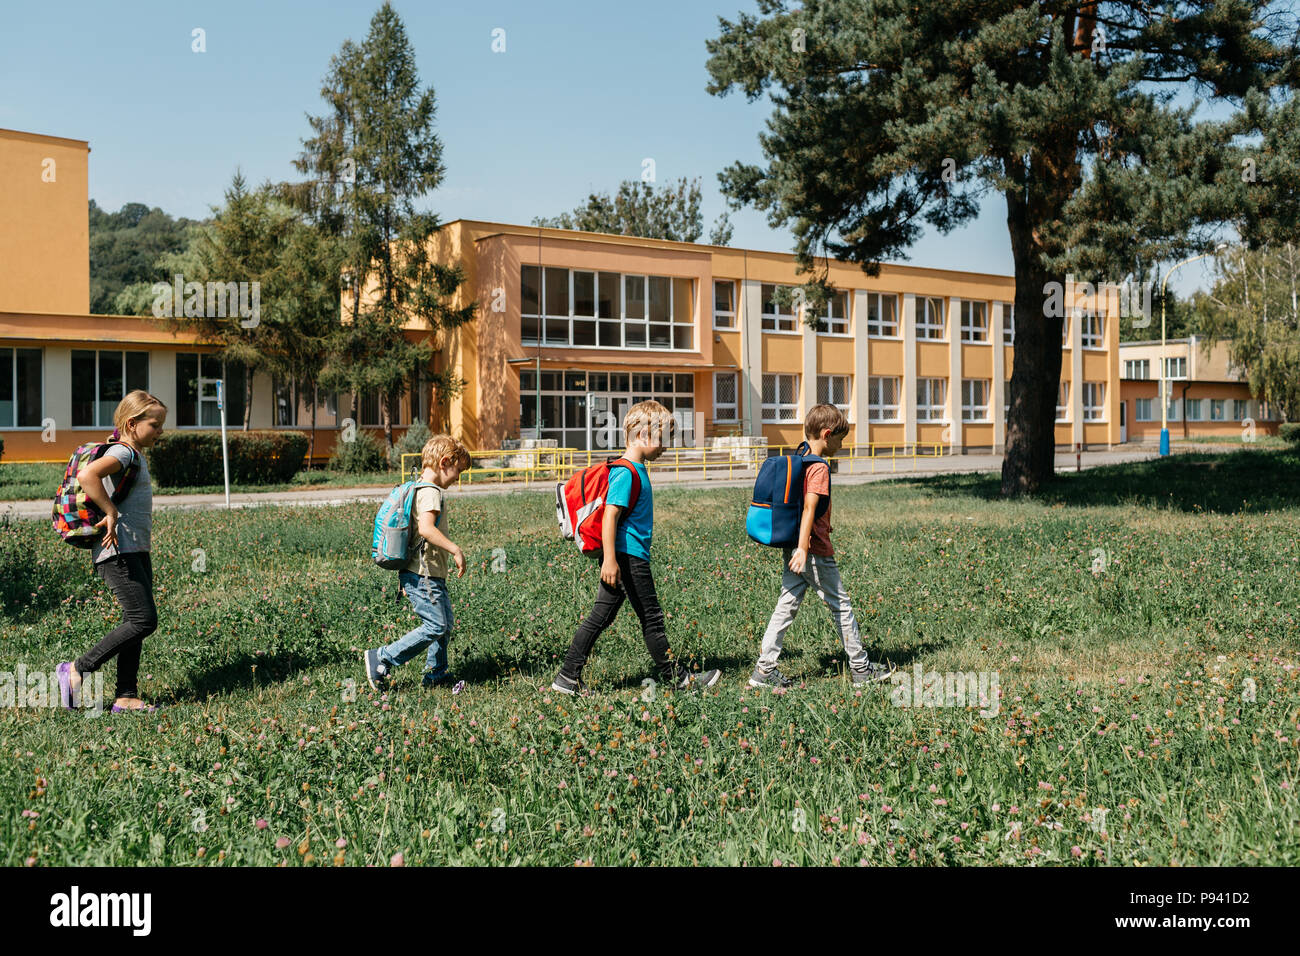 Back to school - children passing by school one after another. Young students walking in line to school on a sunny morning. - Stock Image